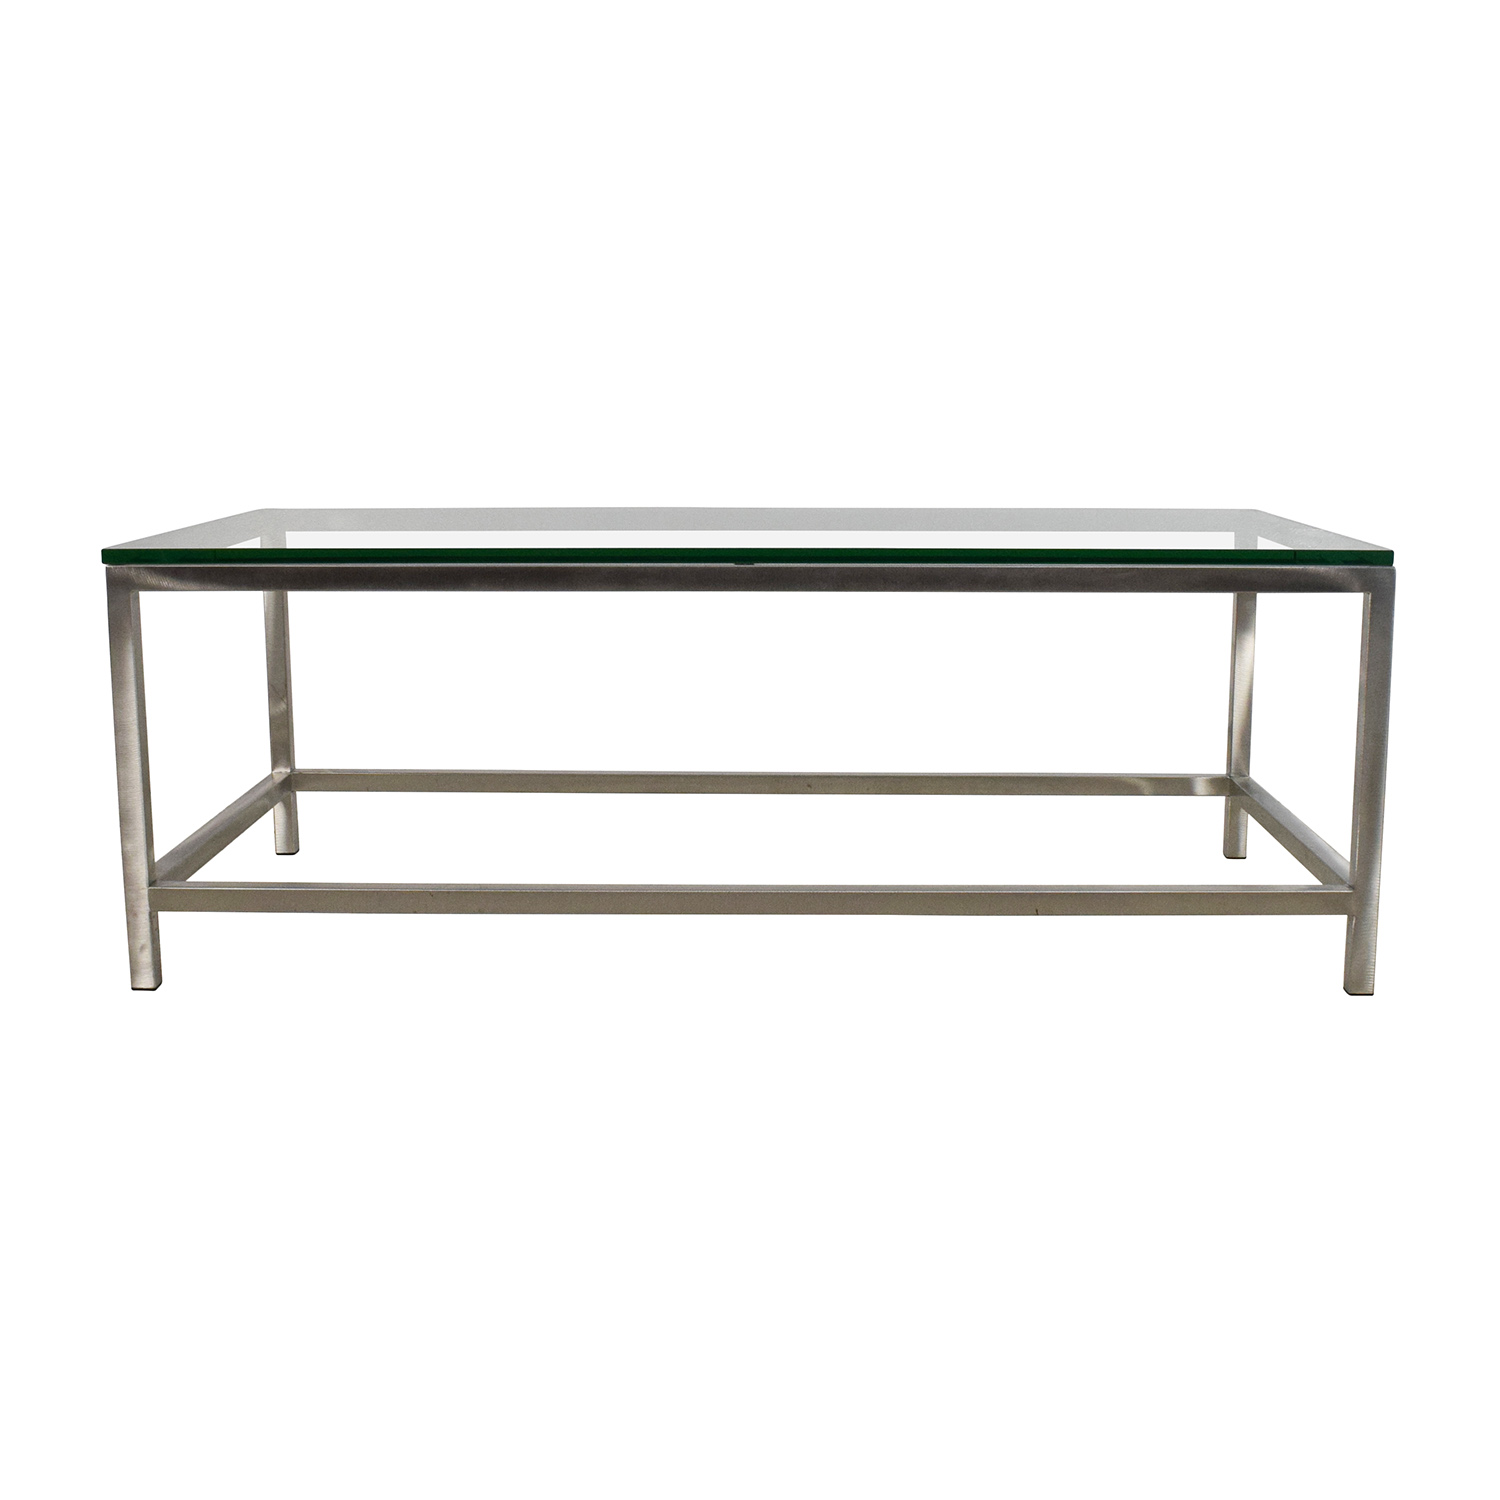 Charmant Crate And Barrel Crate U0026 Barrel Era Rectangular Glass Top Coffee Table ...